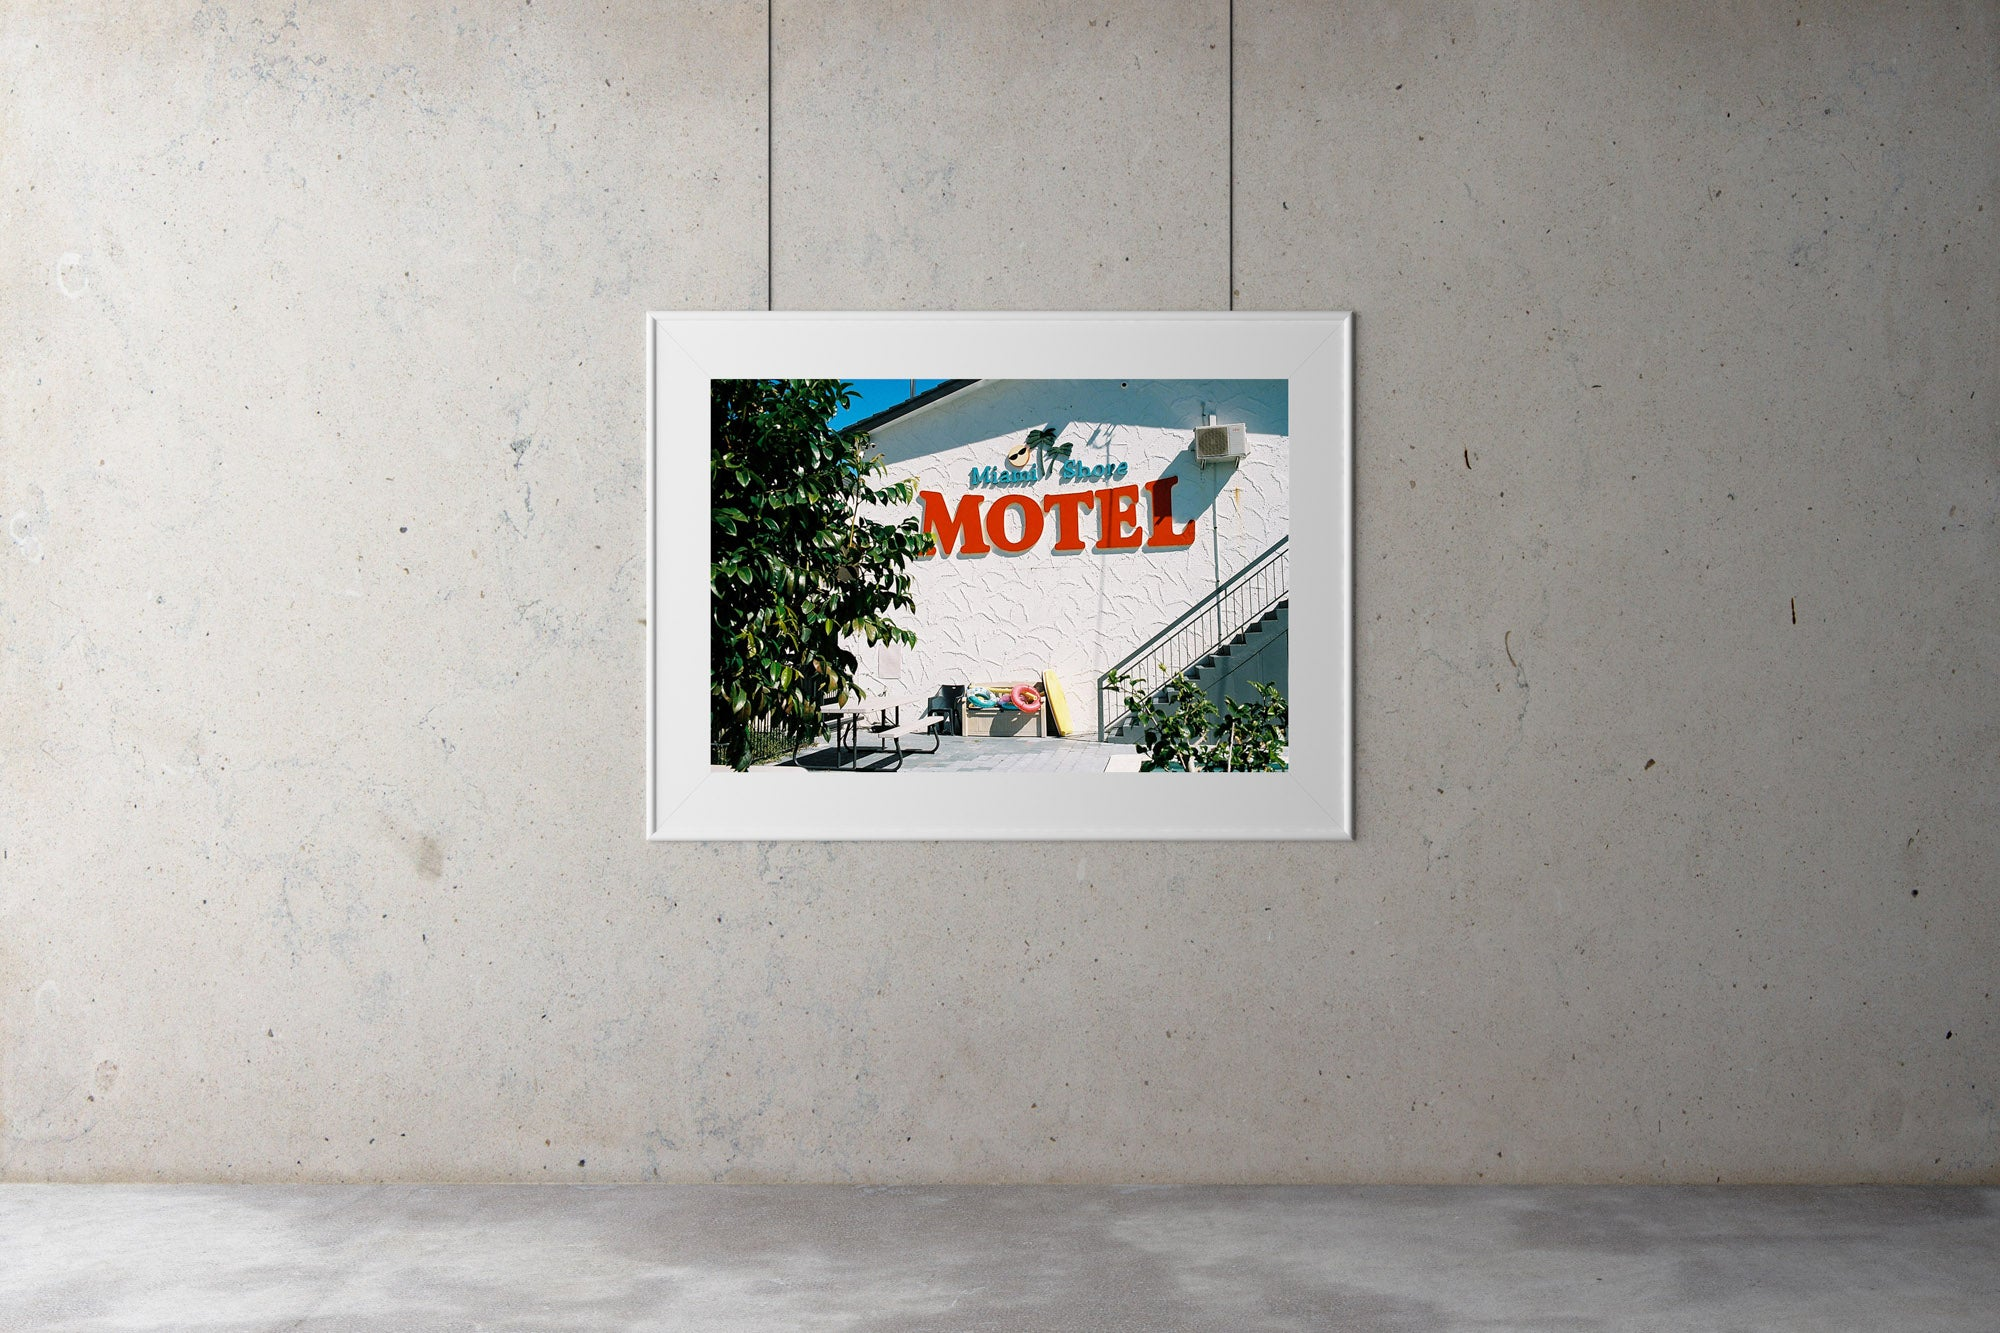 MIAMI SHORES MOTEL